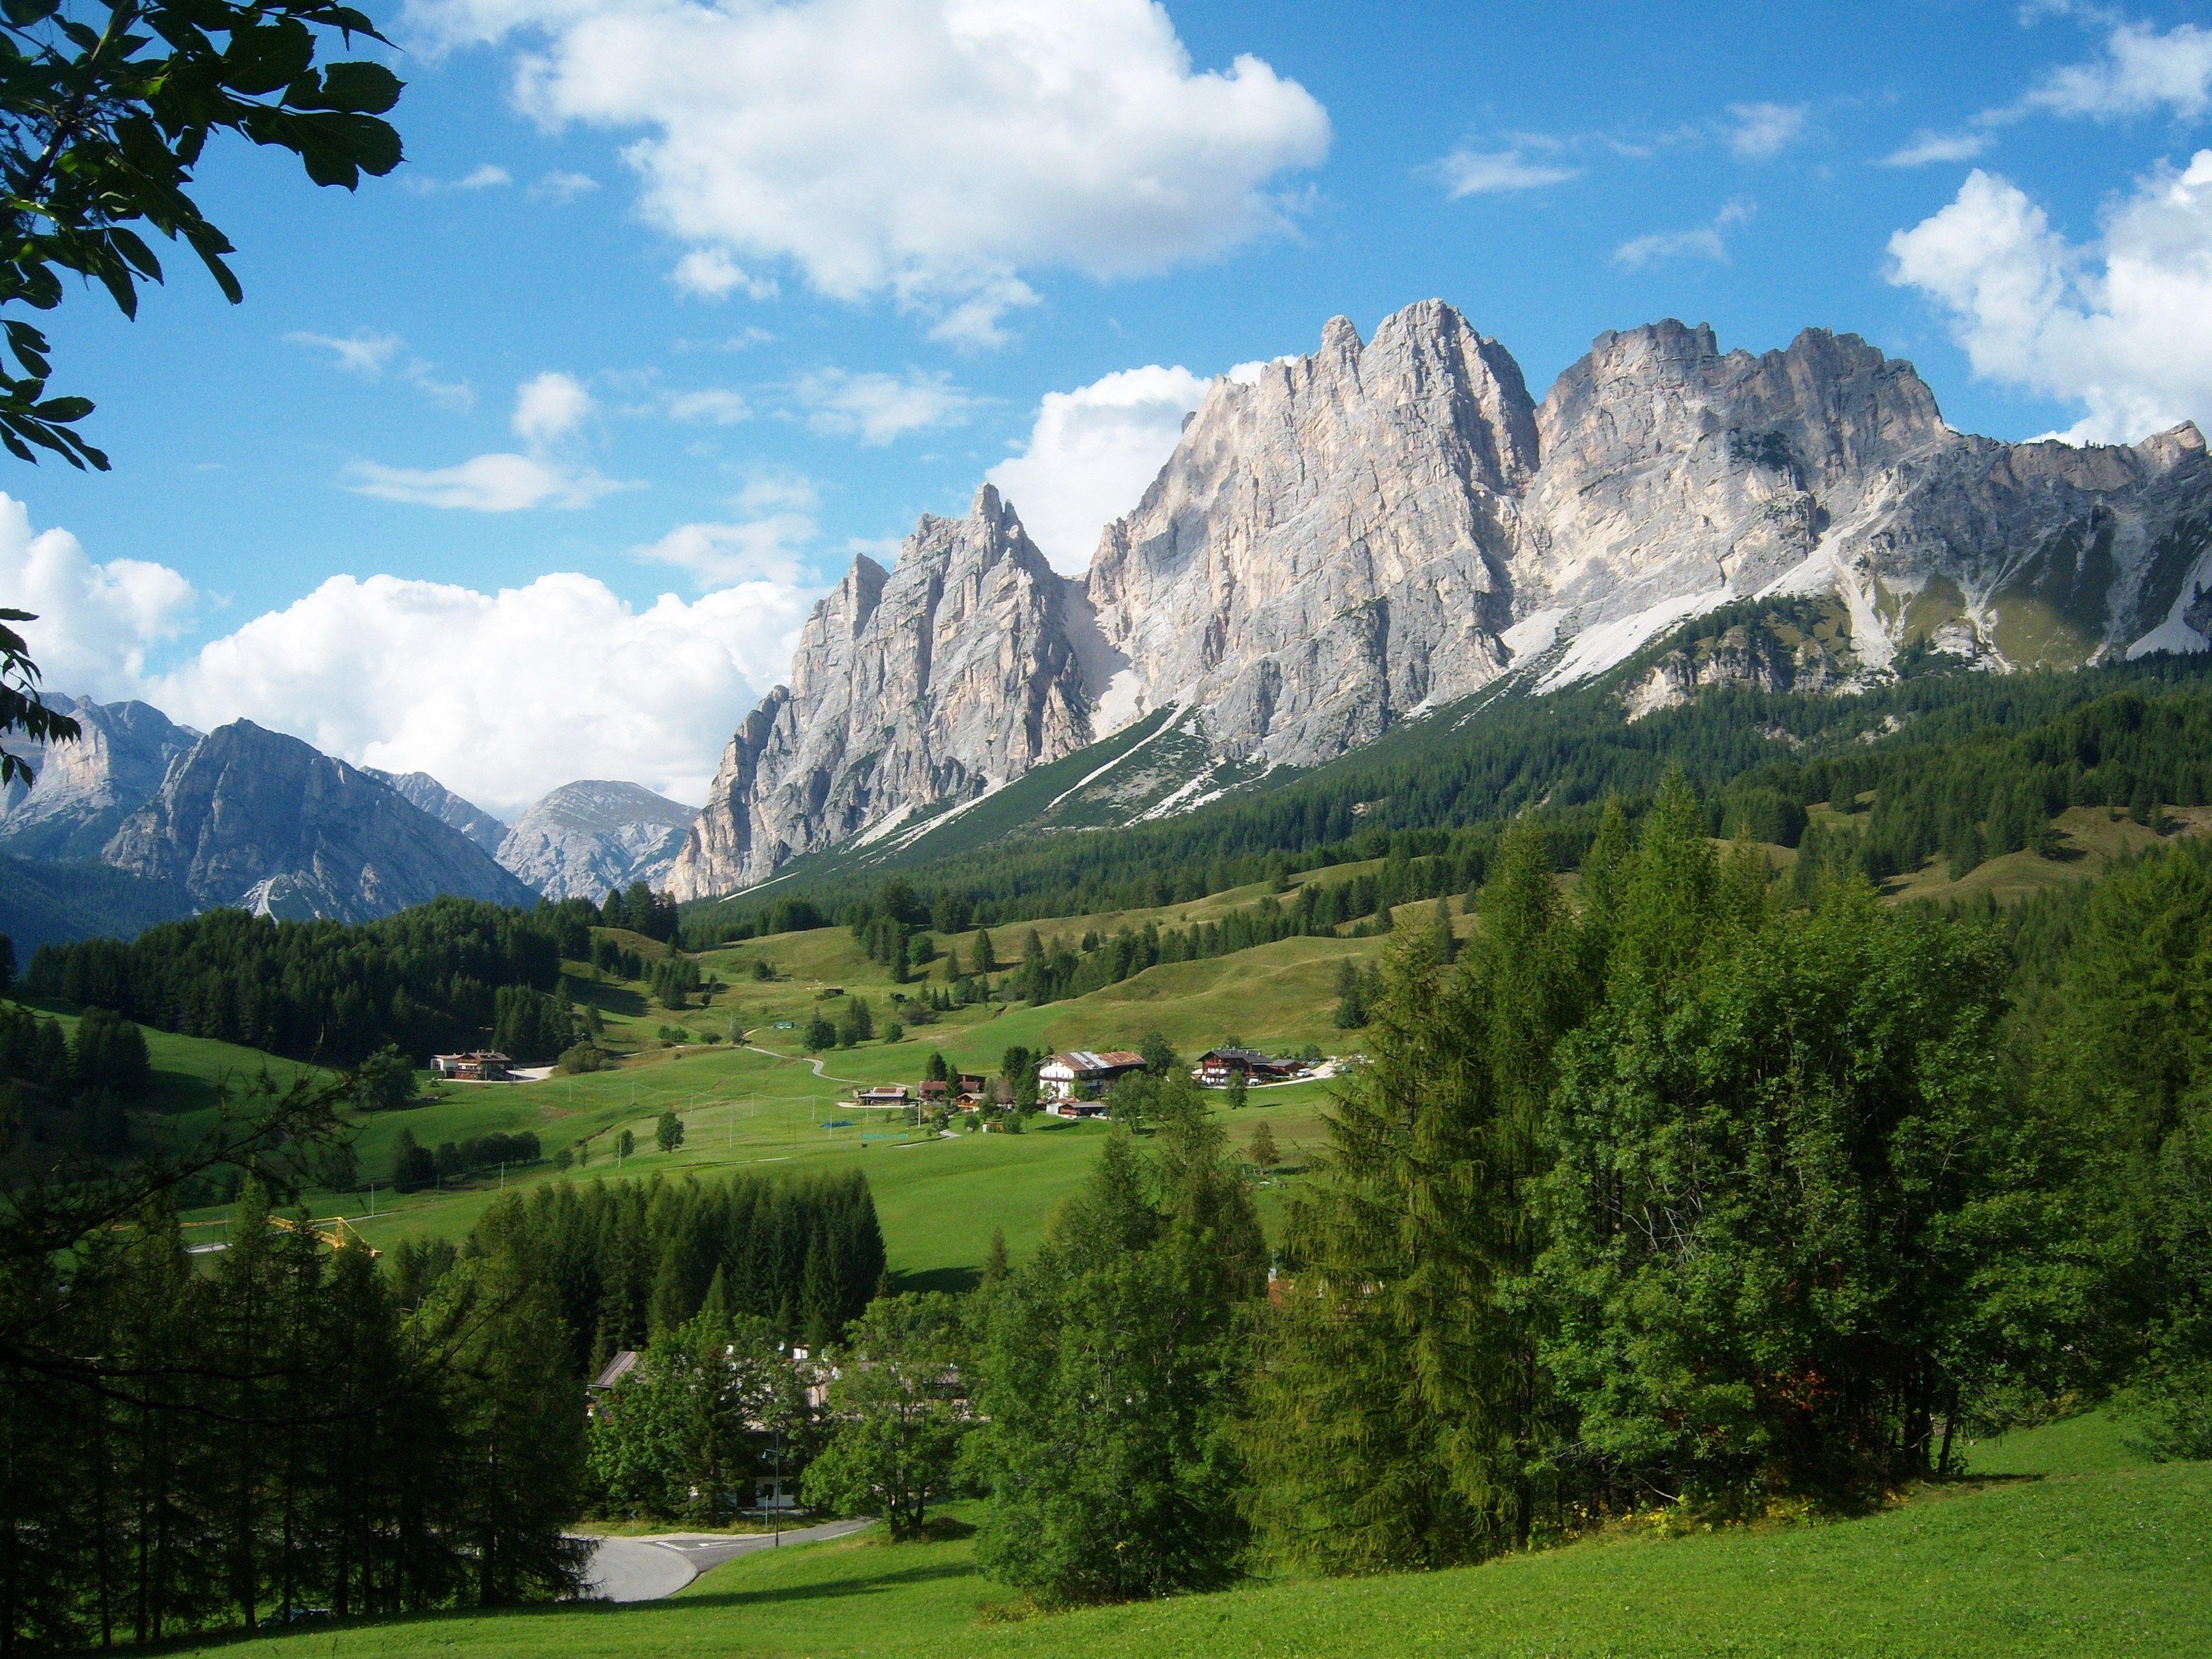 Cortina d'Ampezzo, Dolomites, Italy. One of the best ways